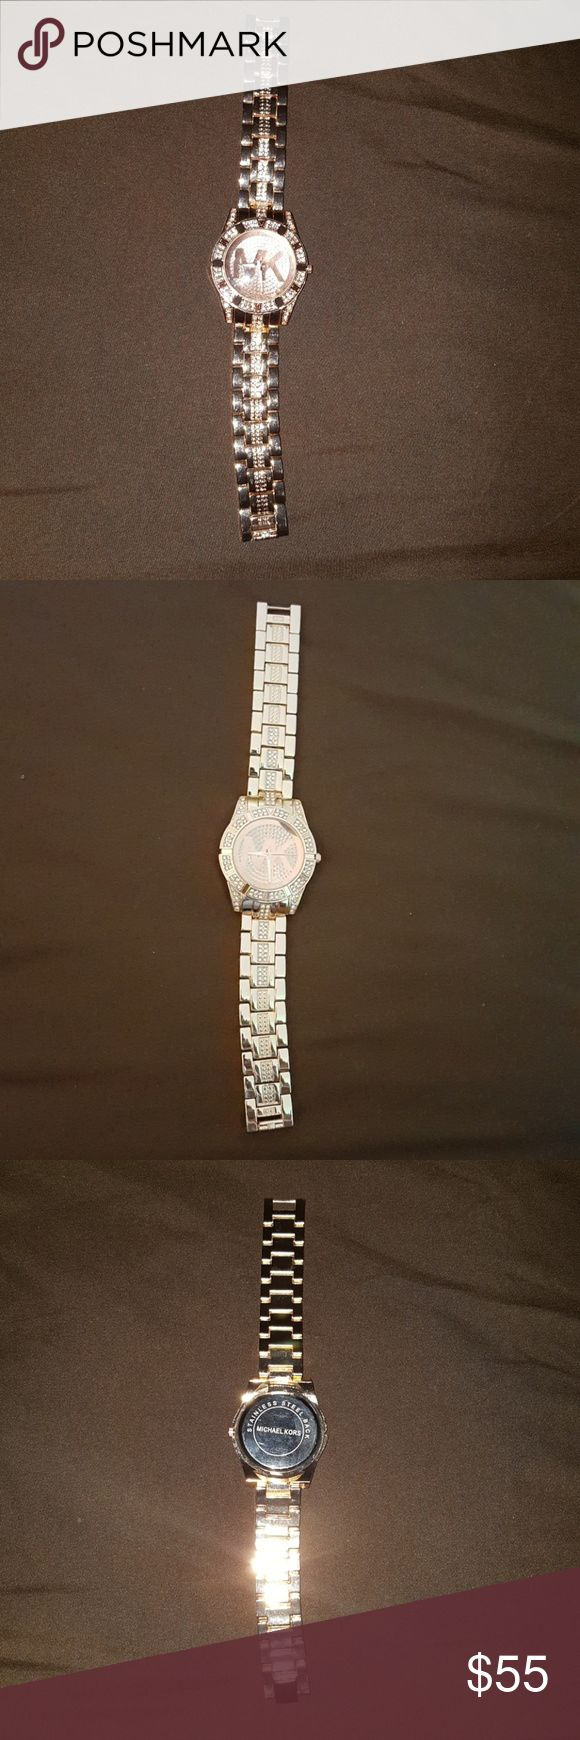 Rose gold Michael kors watch price firm Pre owned Good condition Like new Works great Michael Kors Accessories Watches